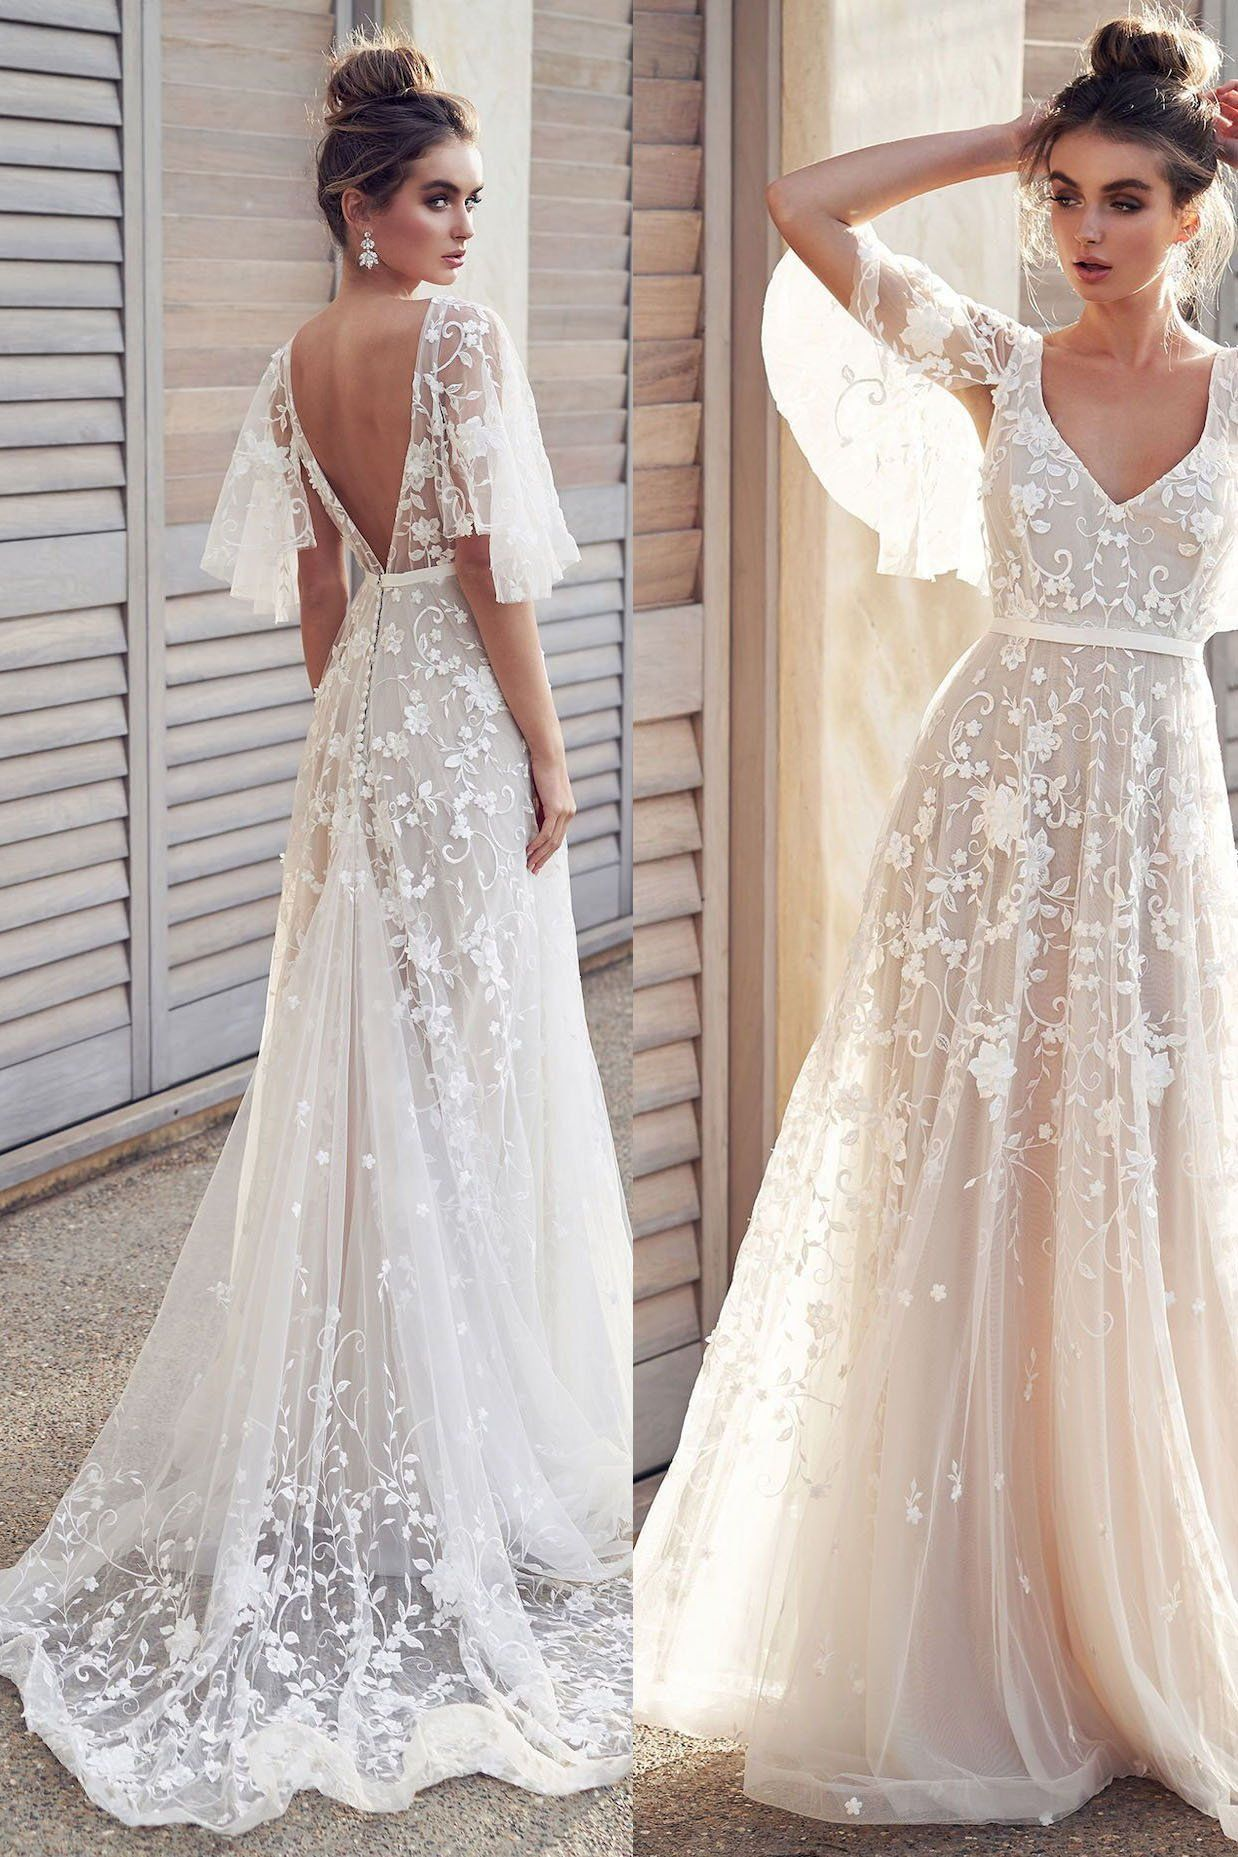 Photo of Ivory V Neck Beach Wedding Dresses with Lace Appliques, Romantic Backless Bridal Dresses UQ2372